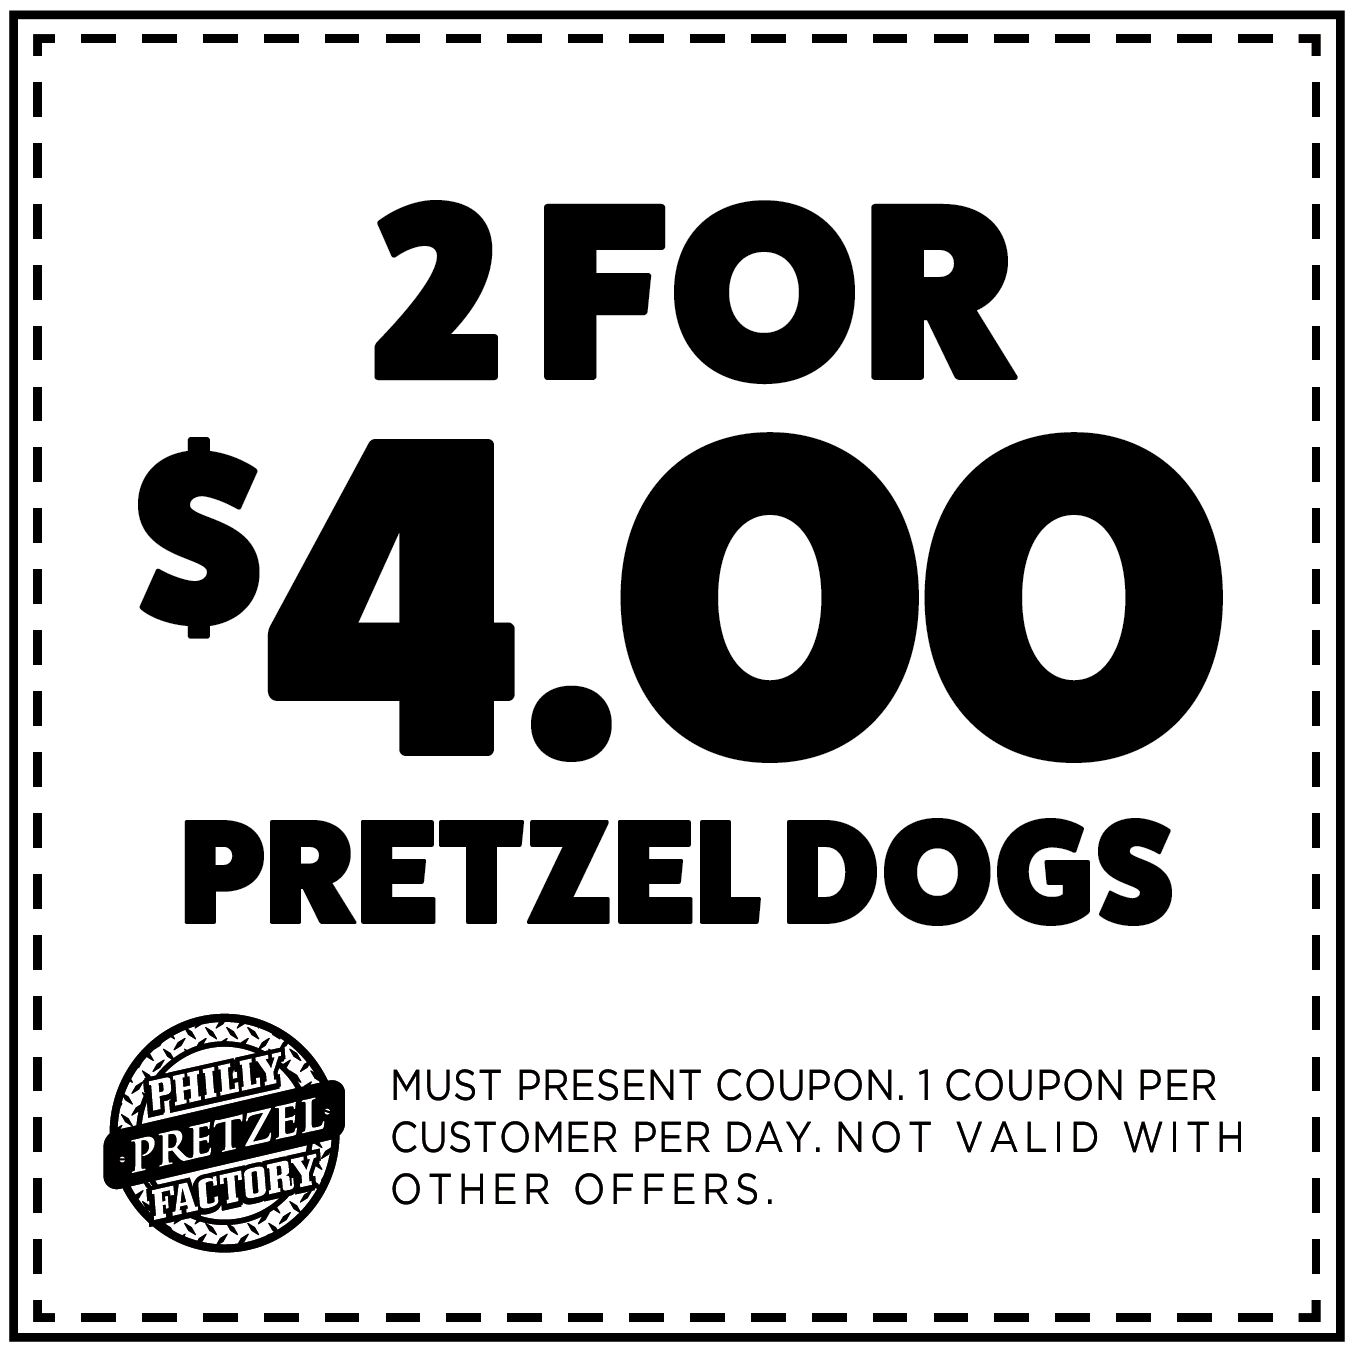 2 for $4 Pretzel Dogs